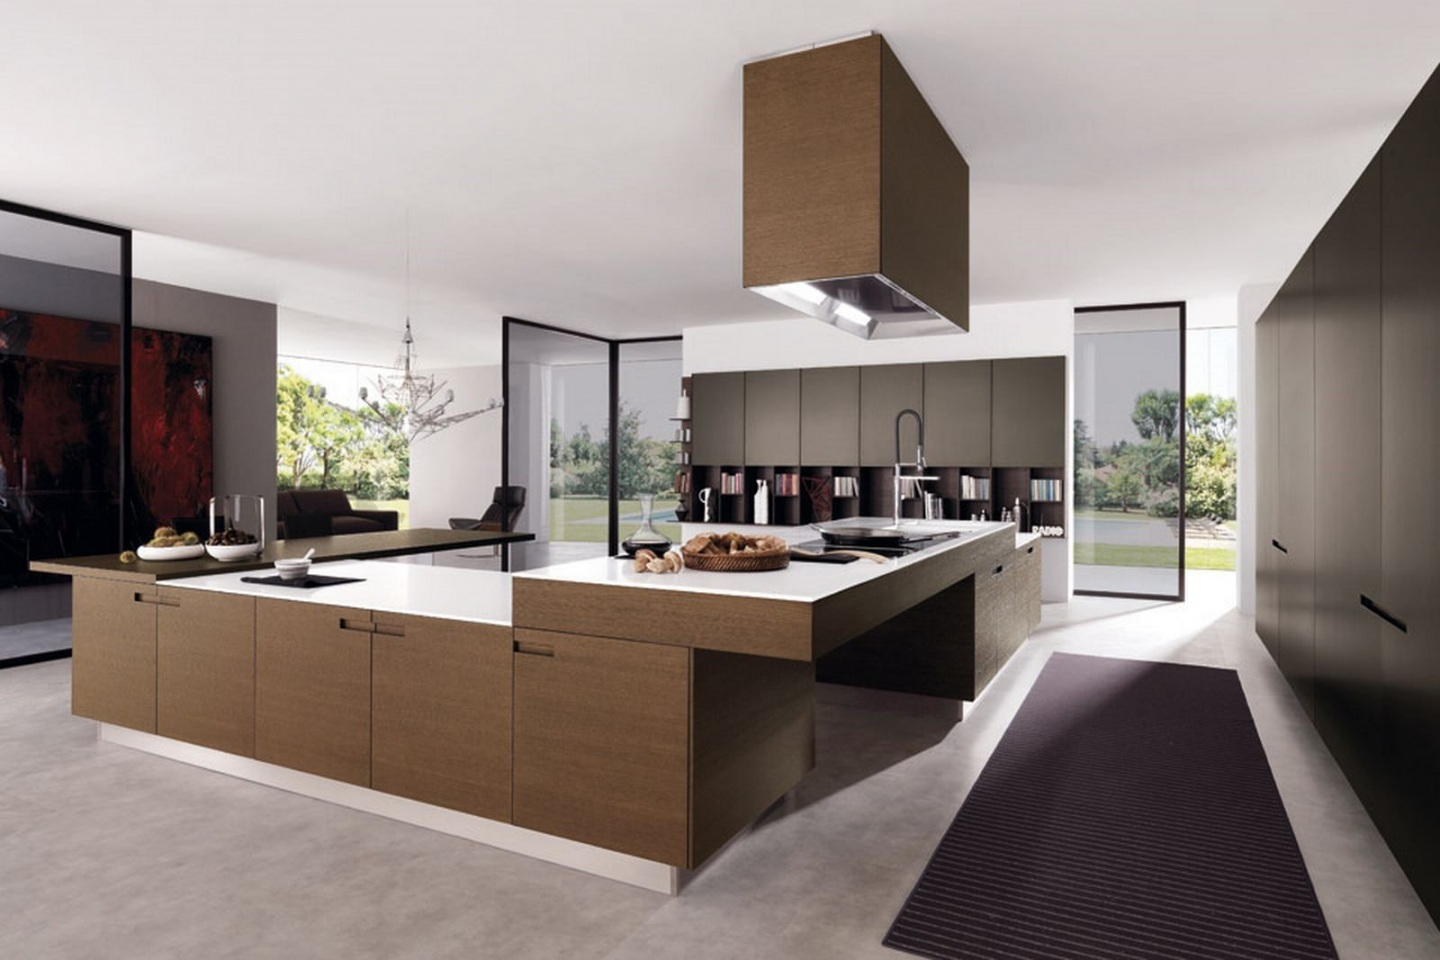 7 Ideas To Make Your Kitchen Look Luxurious On A Budget Live Enhanced